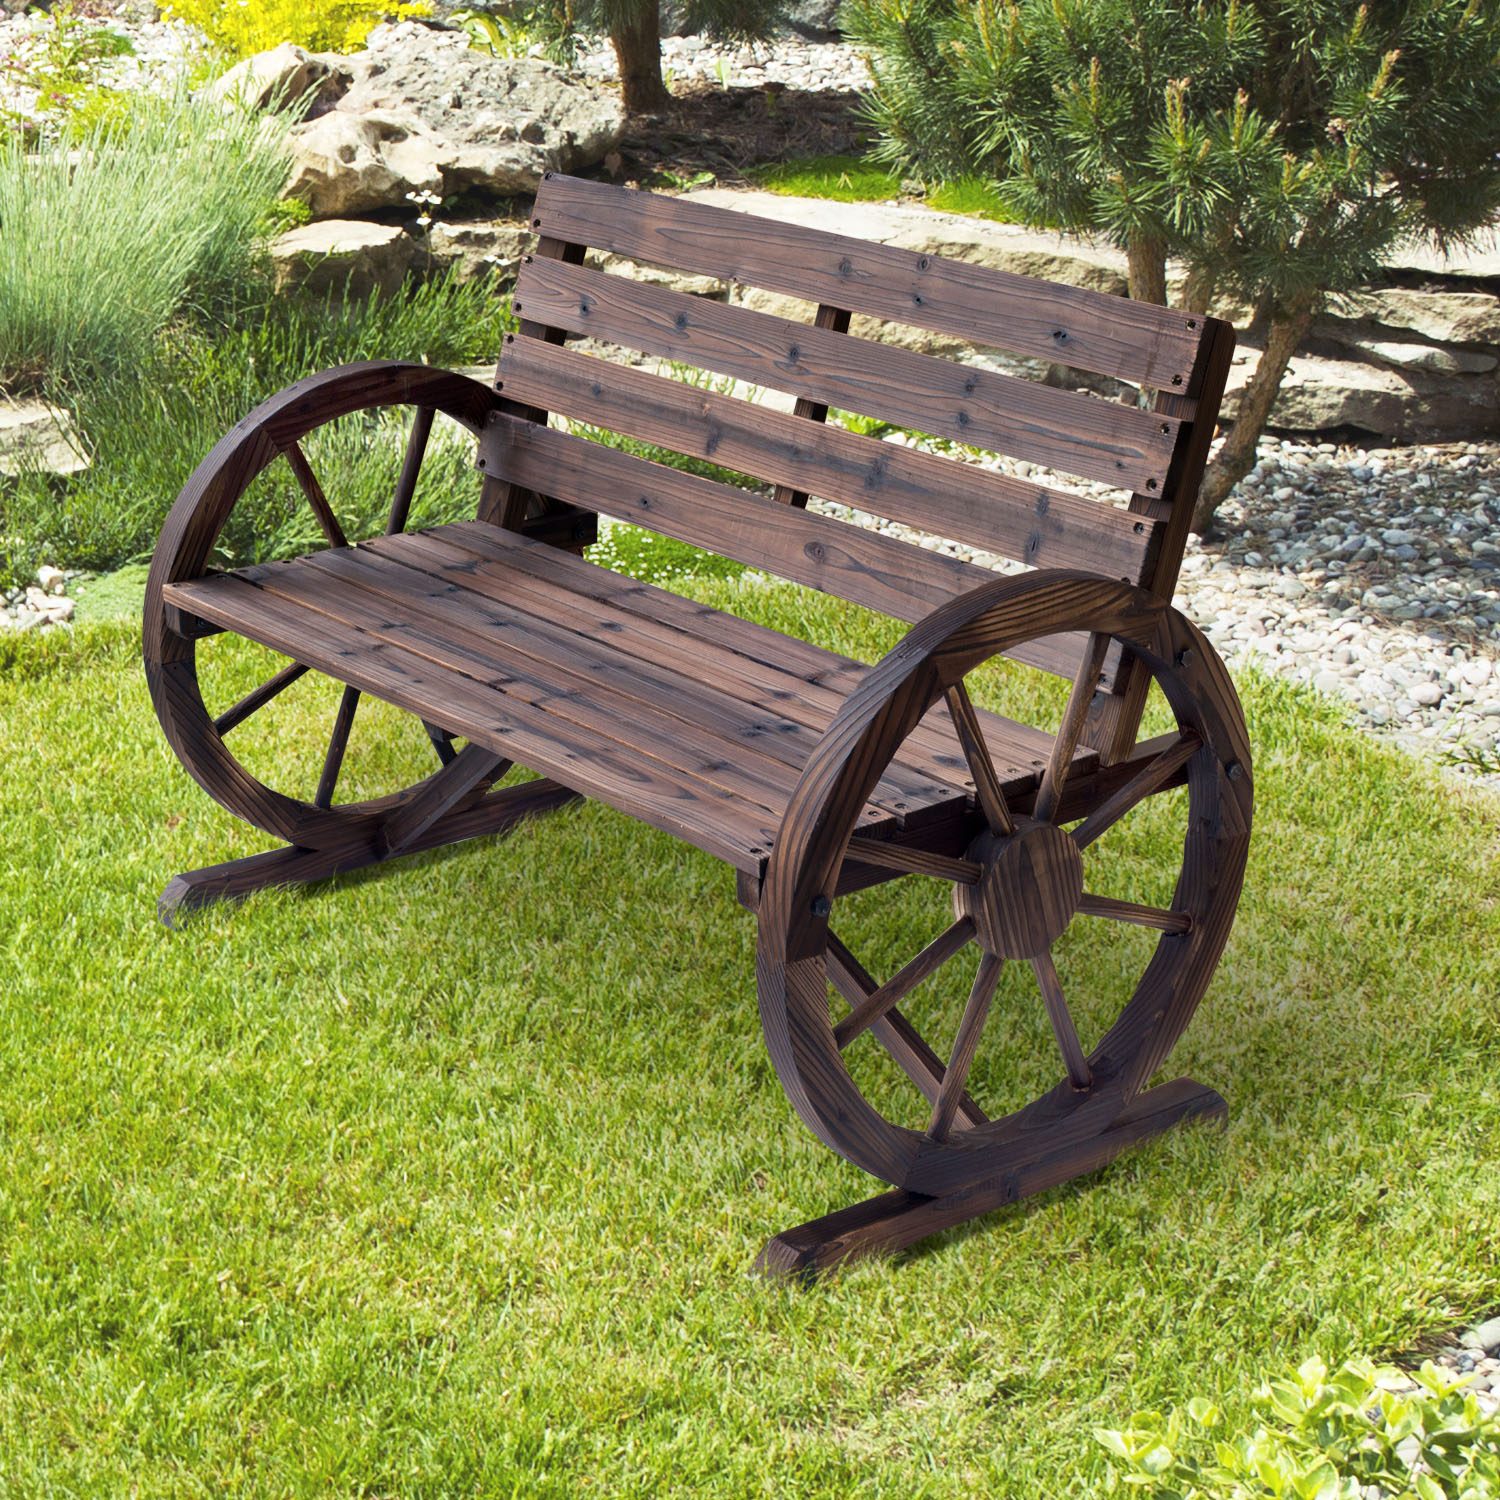 forever benches to wagon bench wheel the built decades woodworking last redwood